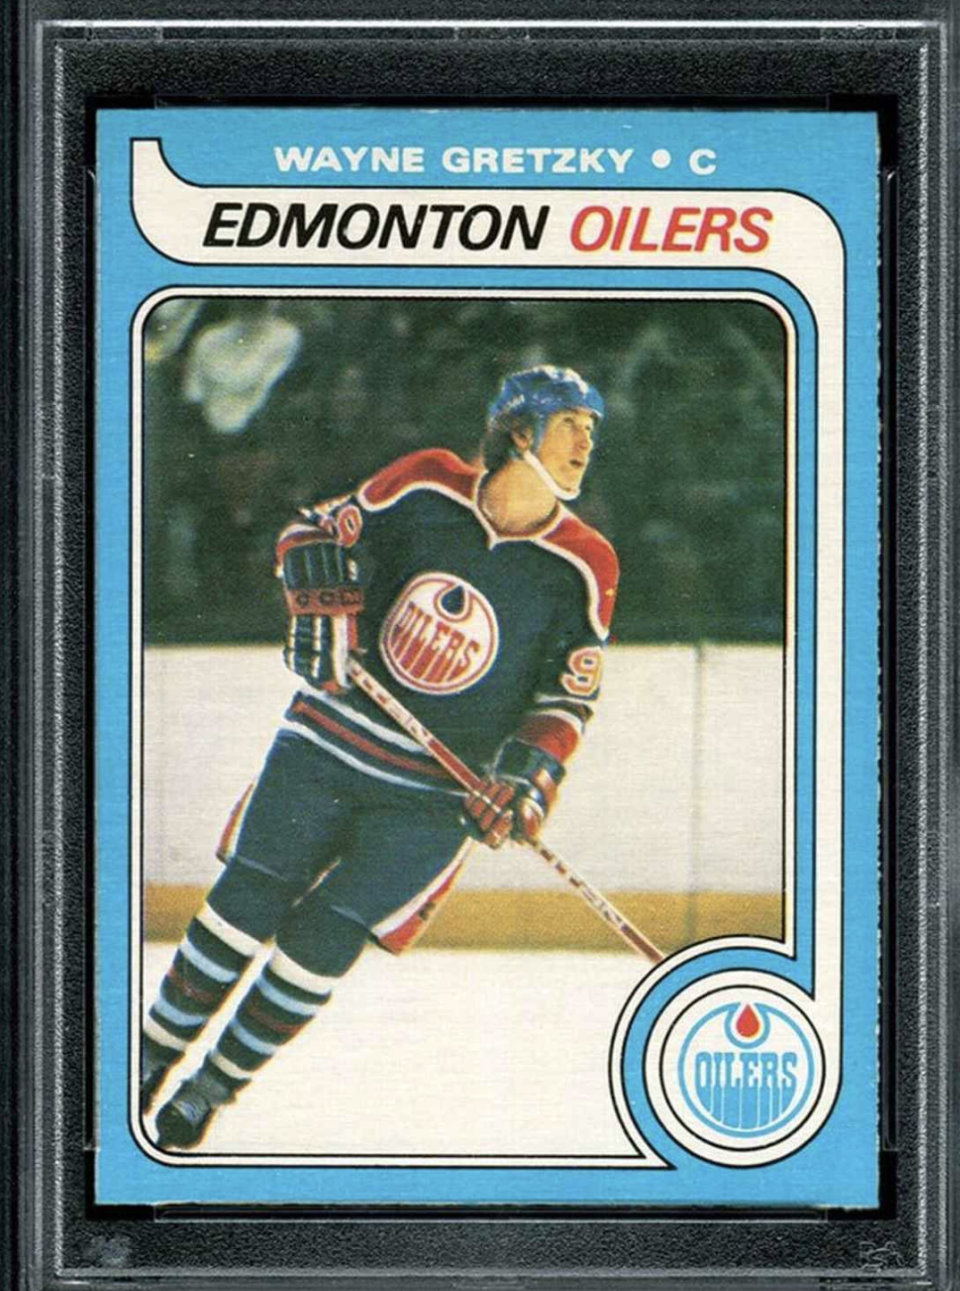 This Wayne Gretzky rookie card just sold for a record amount.